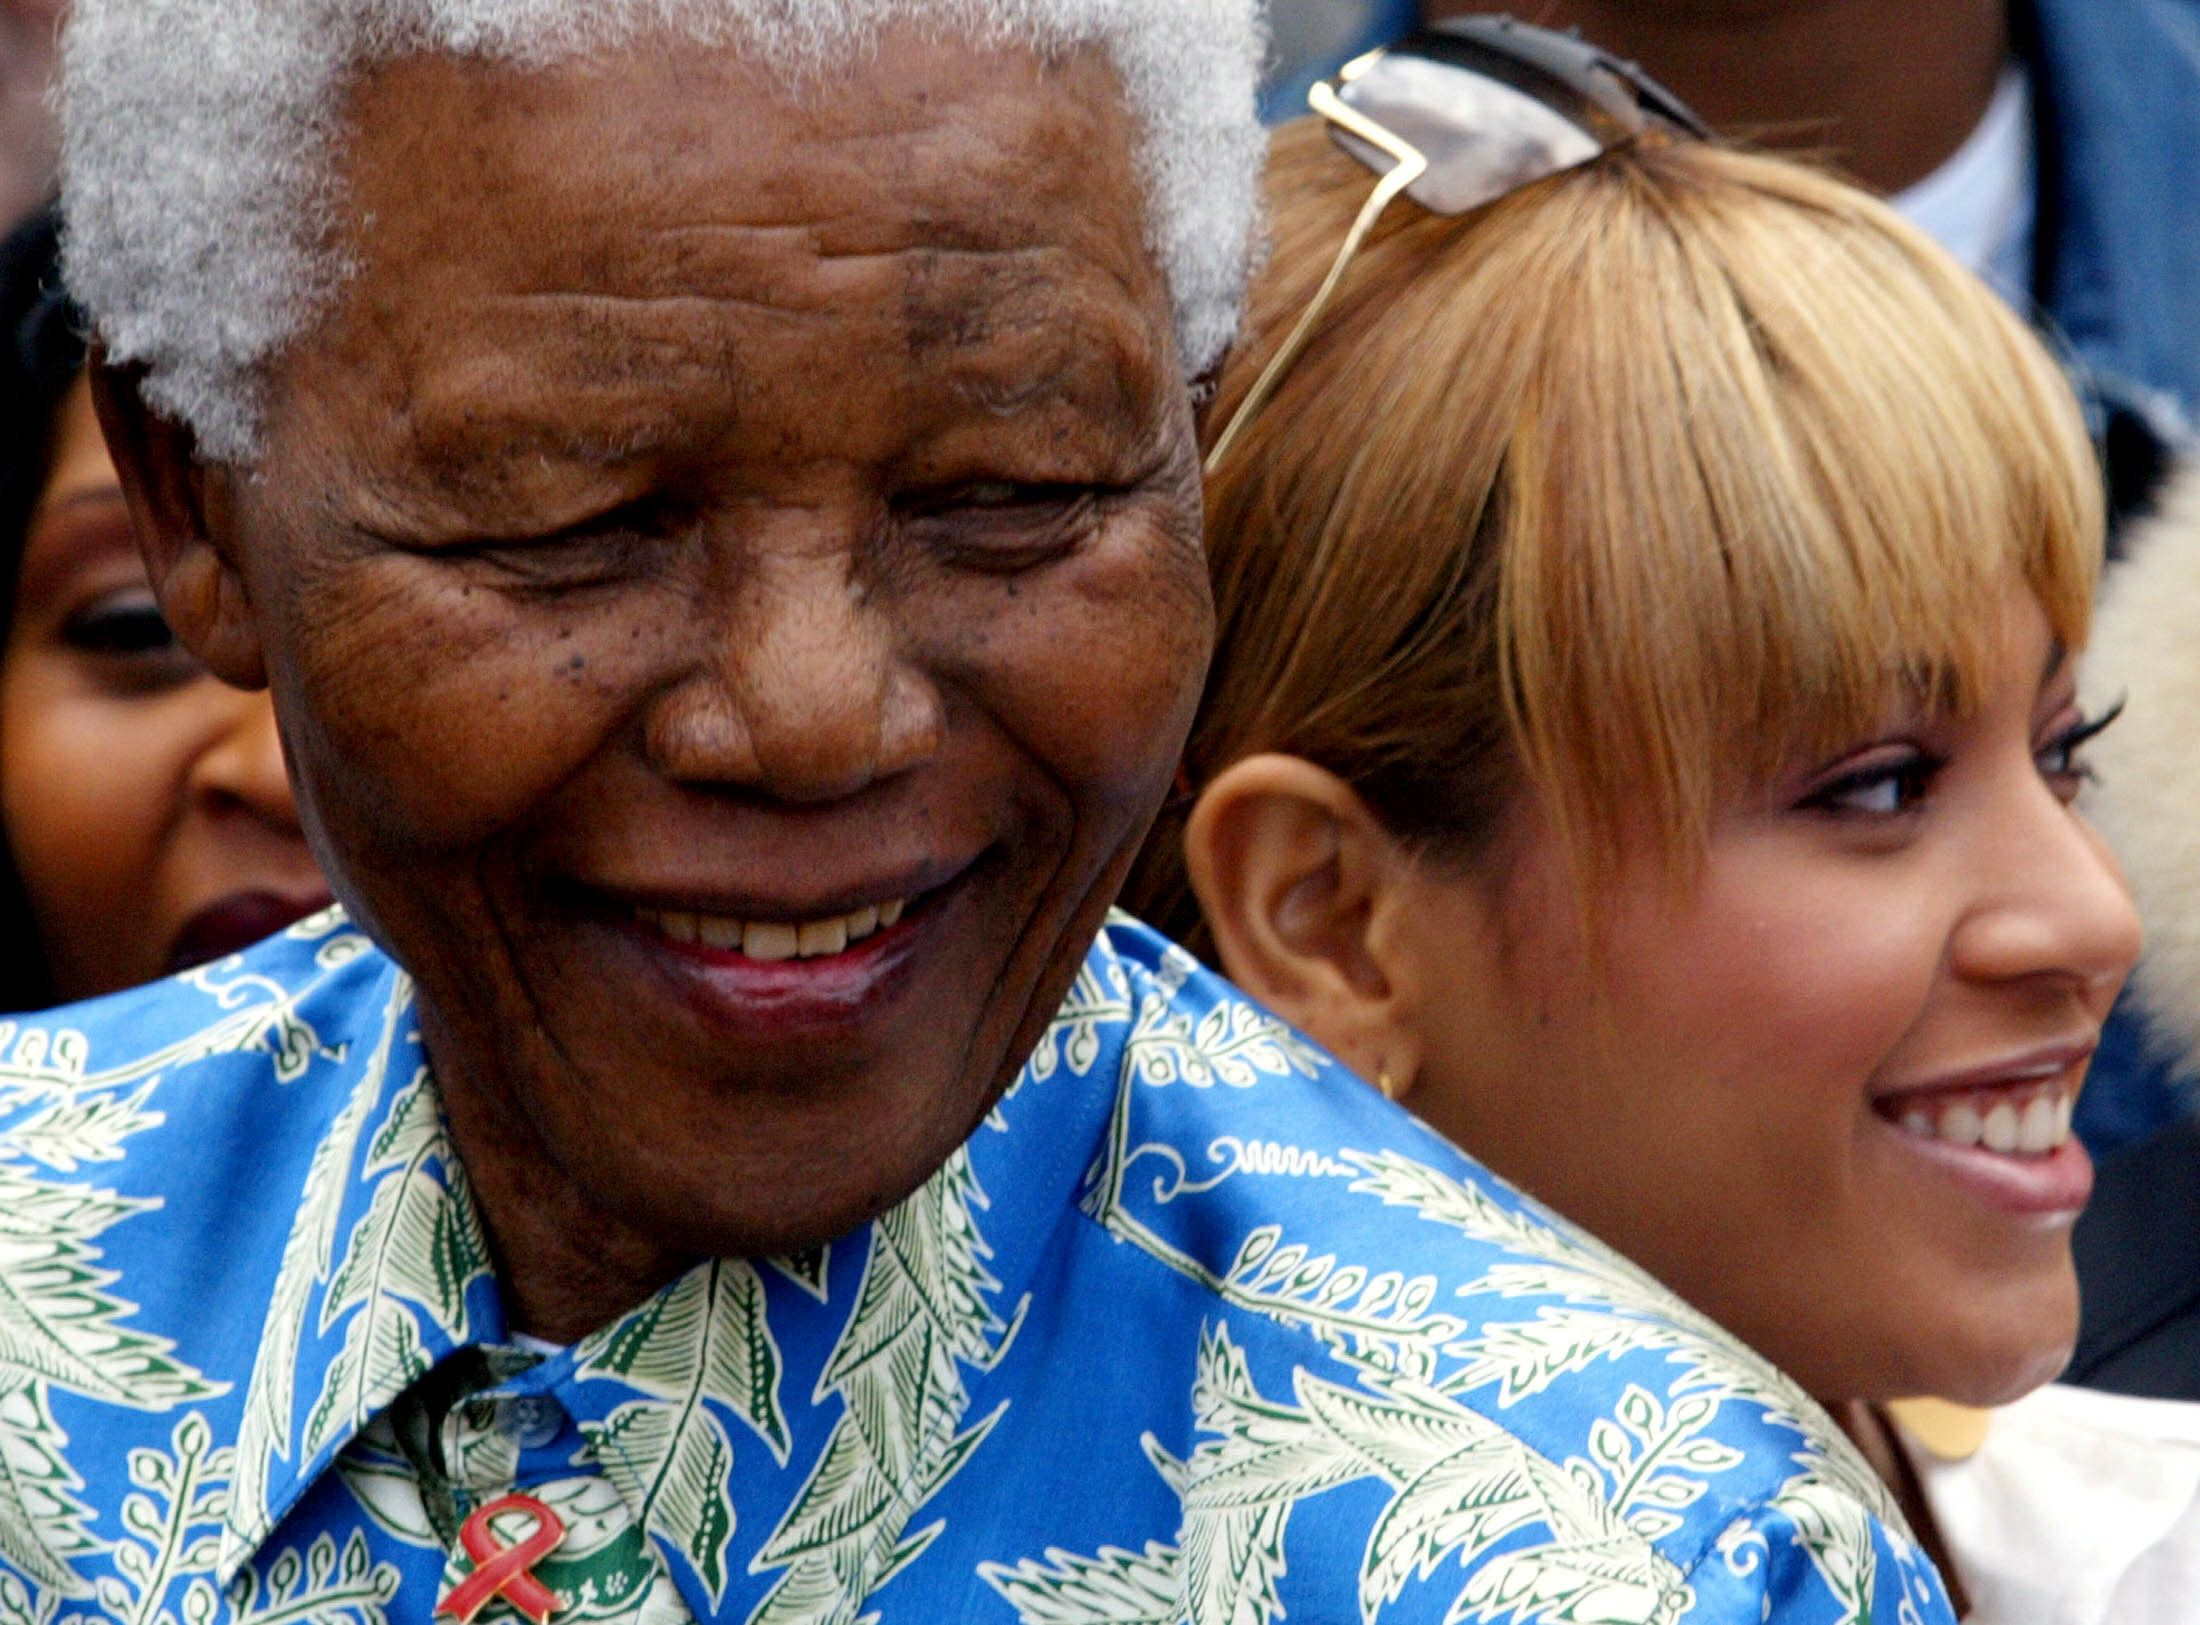 """Nelson Mandela poses for photographers with singer Beyonce Knowles (L) and other performers during a visit to Robben Island Prison near Cape Town, November 28, 2003. Knowles will perform with a host of other stars at the """"46664"""" Aids benefit concert on November 29. """"46664"""" refers to the prison number allocated to Mandela during his long incarceration on the Island. REUTERS/Mike Hutchings PP03110103  MH"""